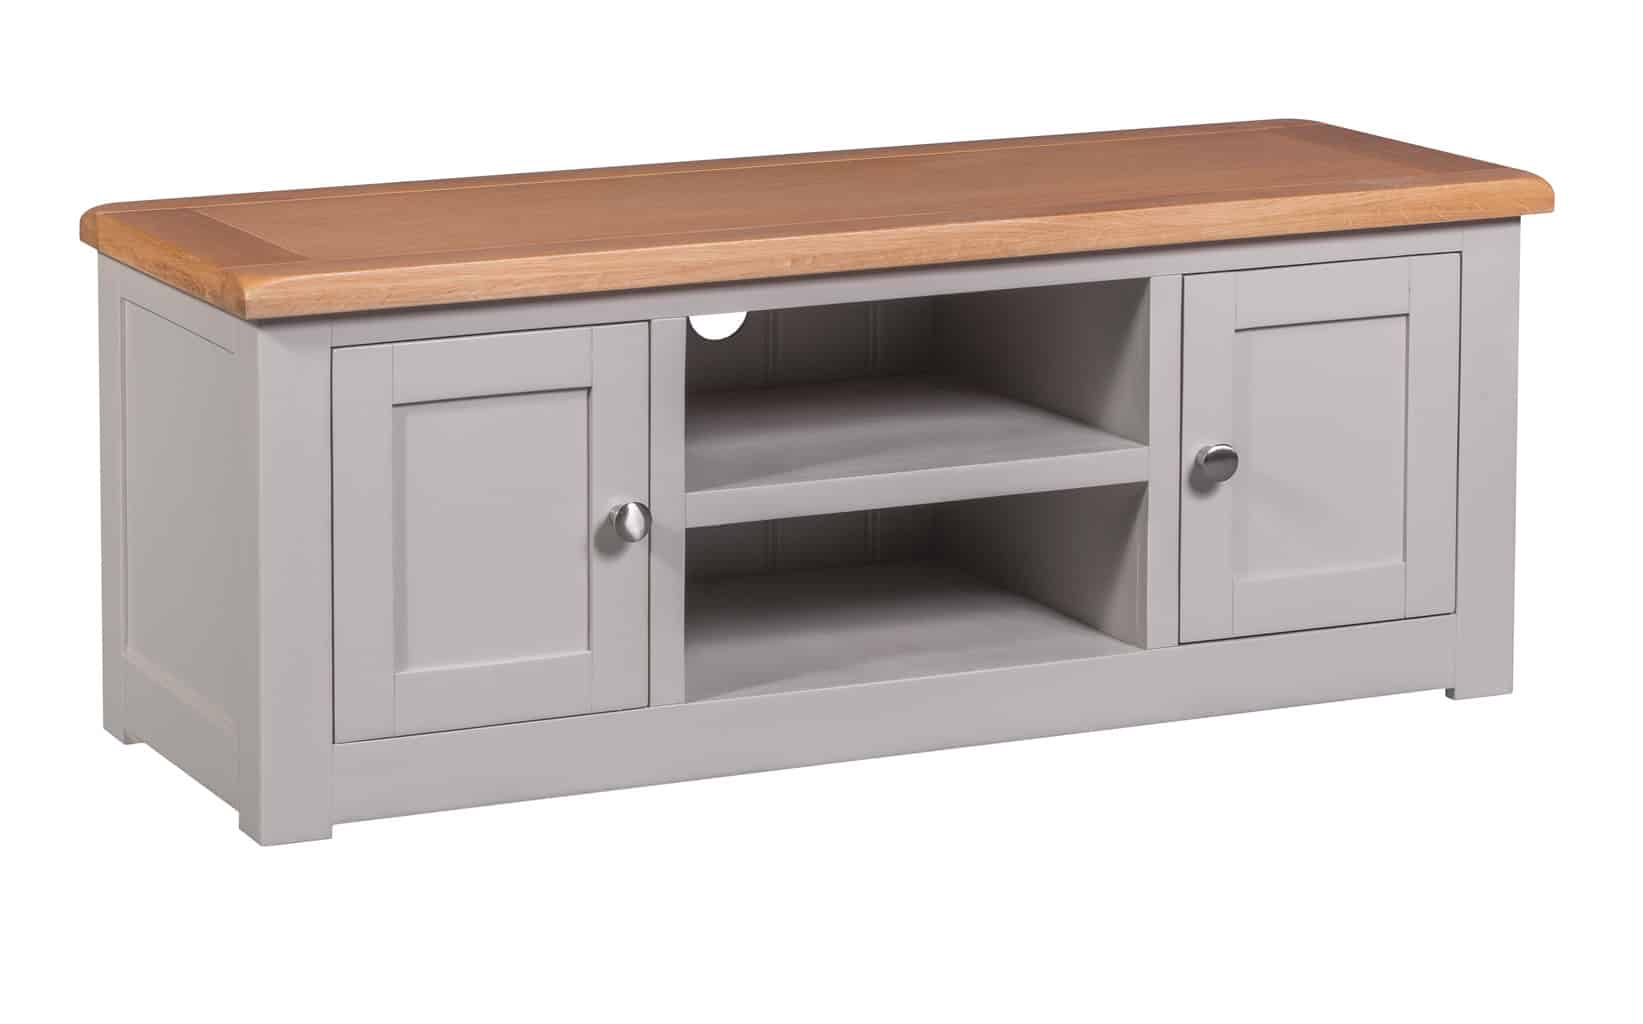 Homestyle gb diamond grey painted oak large lcd plasma tv cabinet stand msl furniture M s home furniture uk